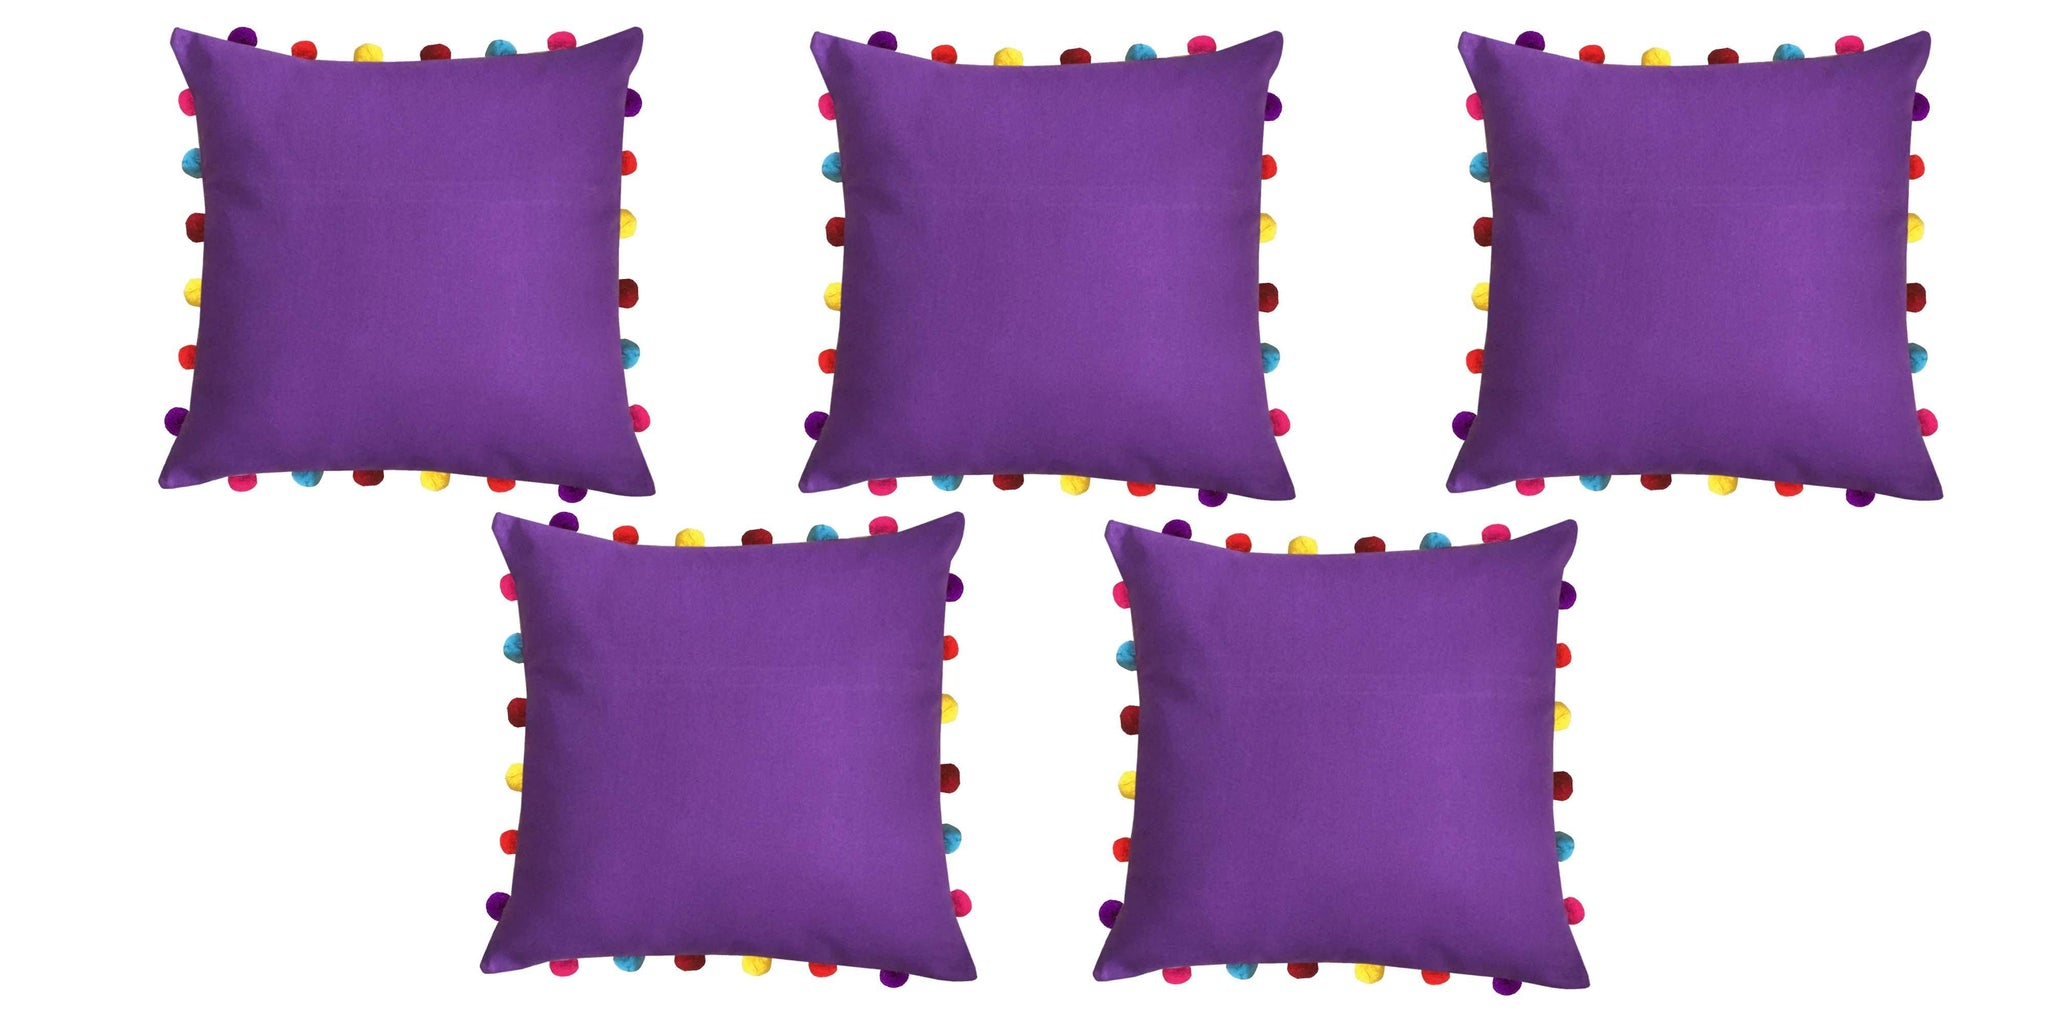 "Lushomes Royal Lilac Cushion Cover with Colorful Pom pom (5 pcs, 18 x 18"") - Lushomes"